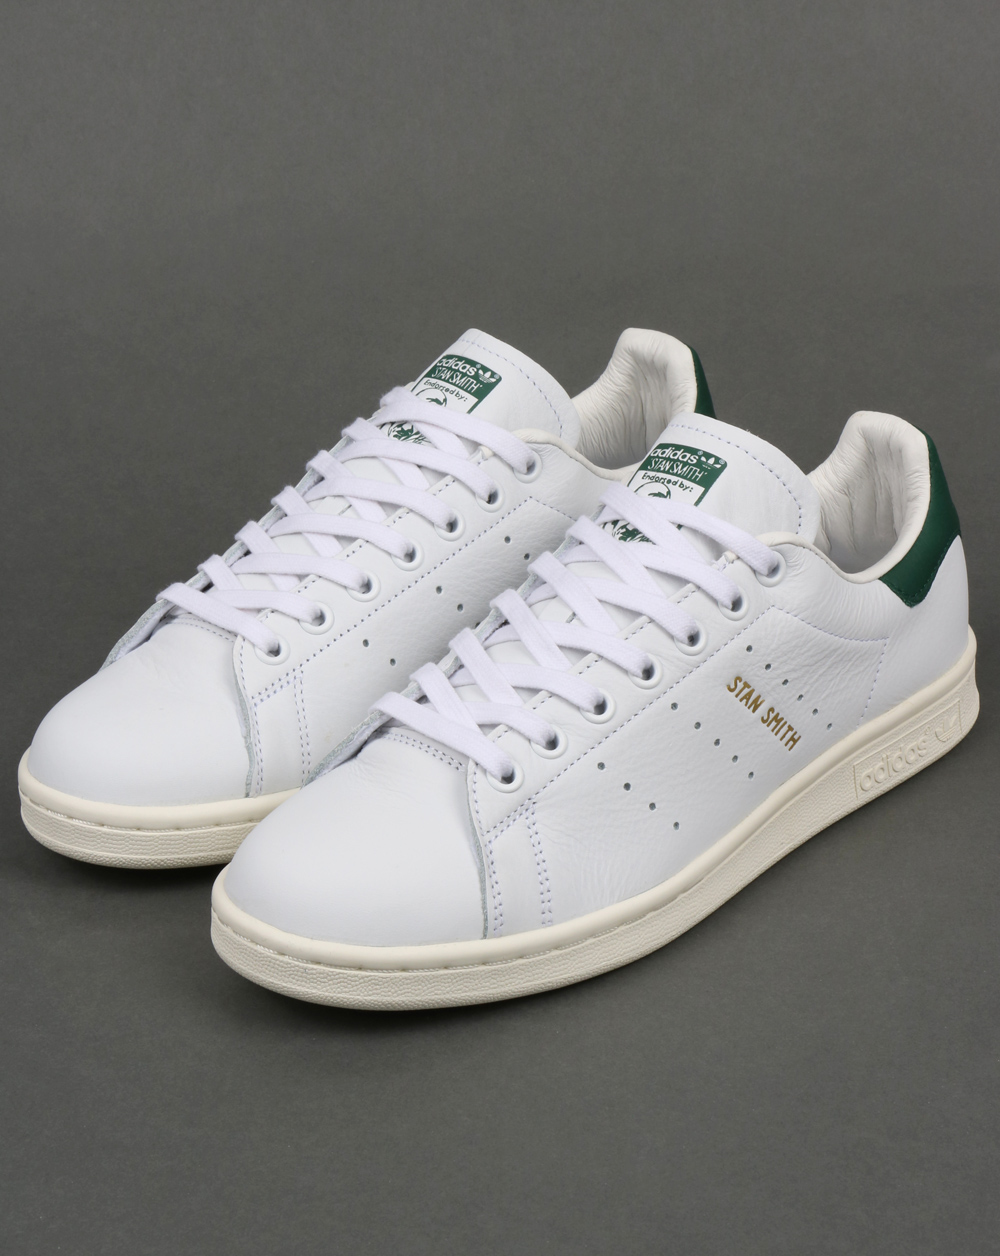 stan smith 80s shoes